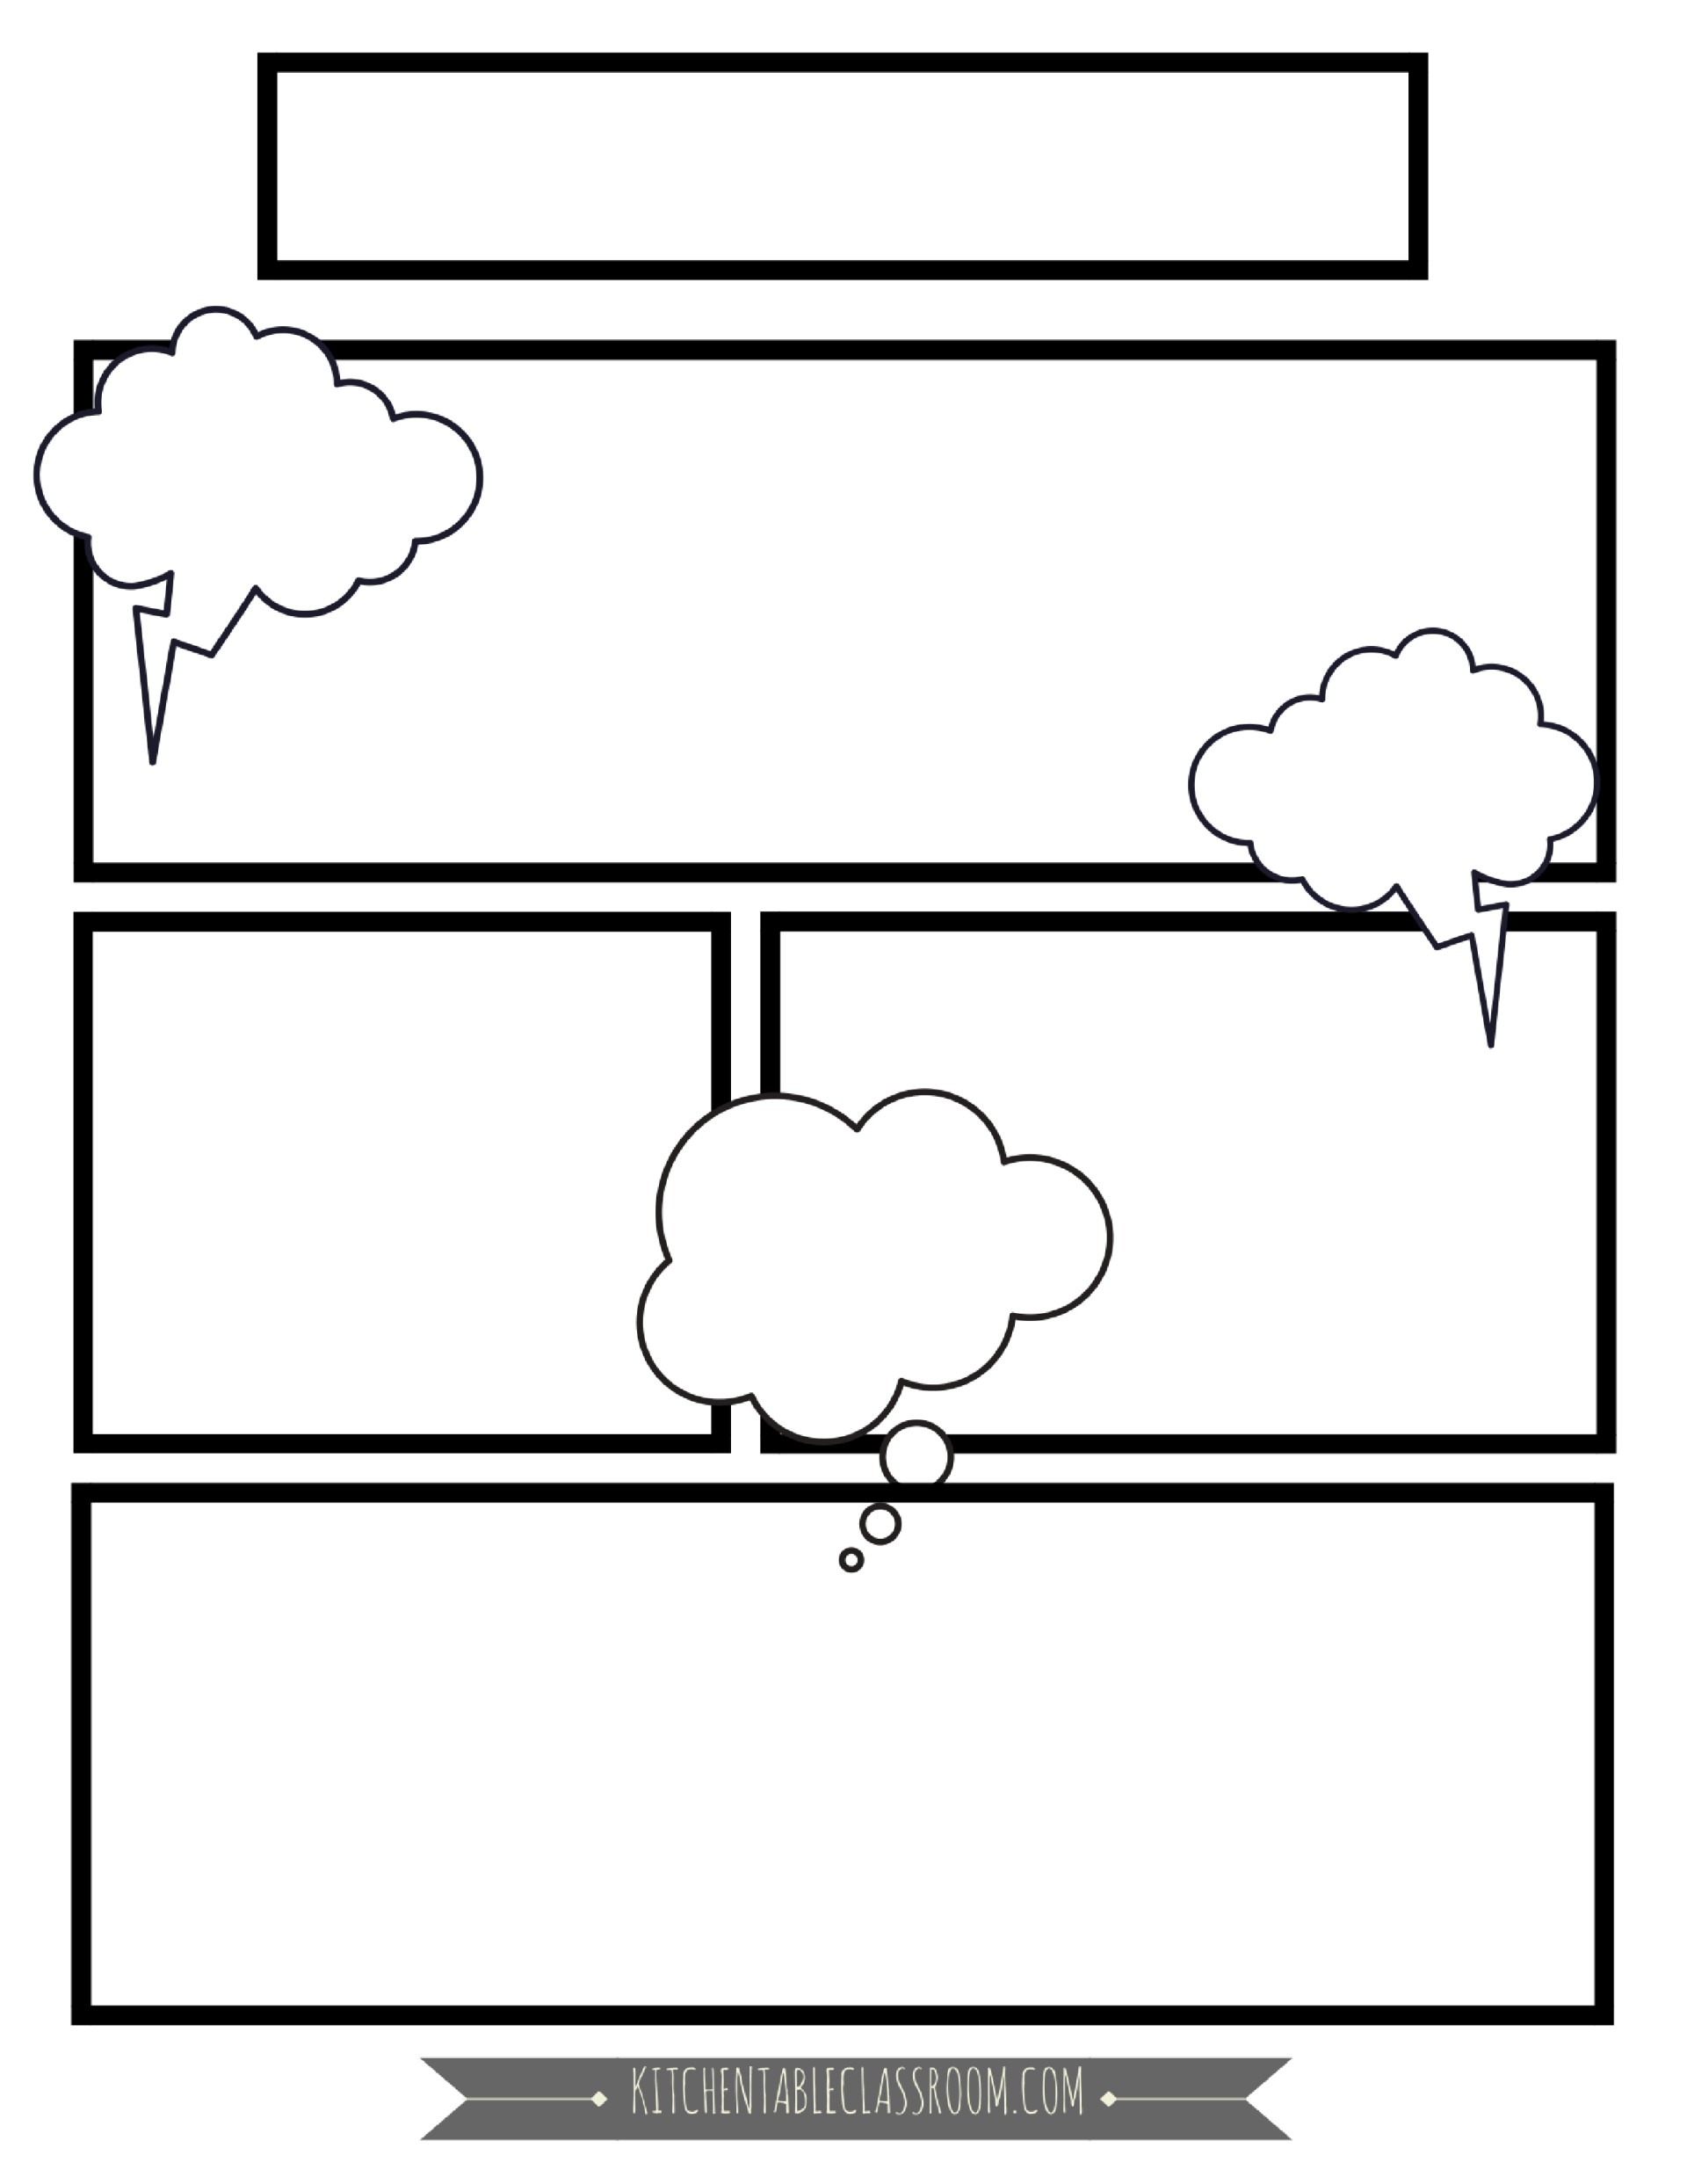 Comic Book Templates